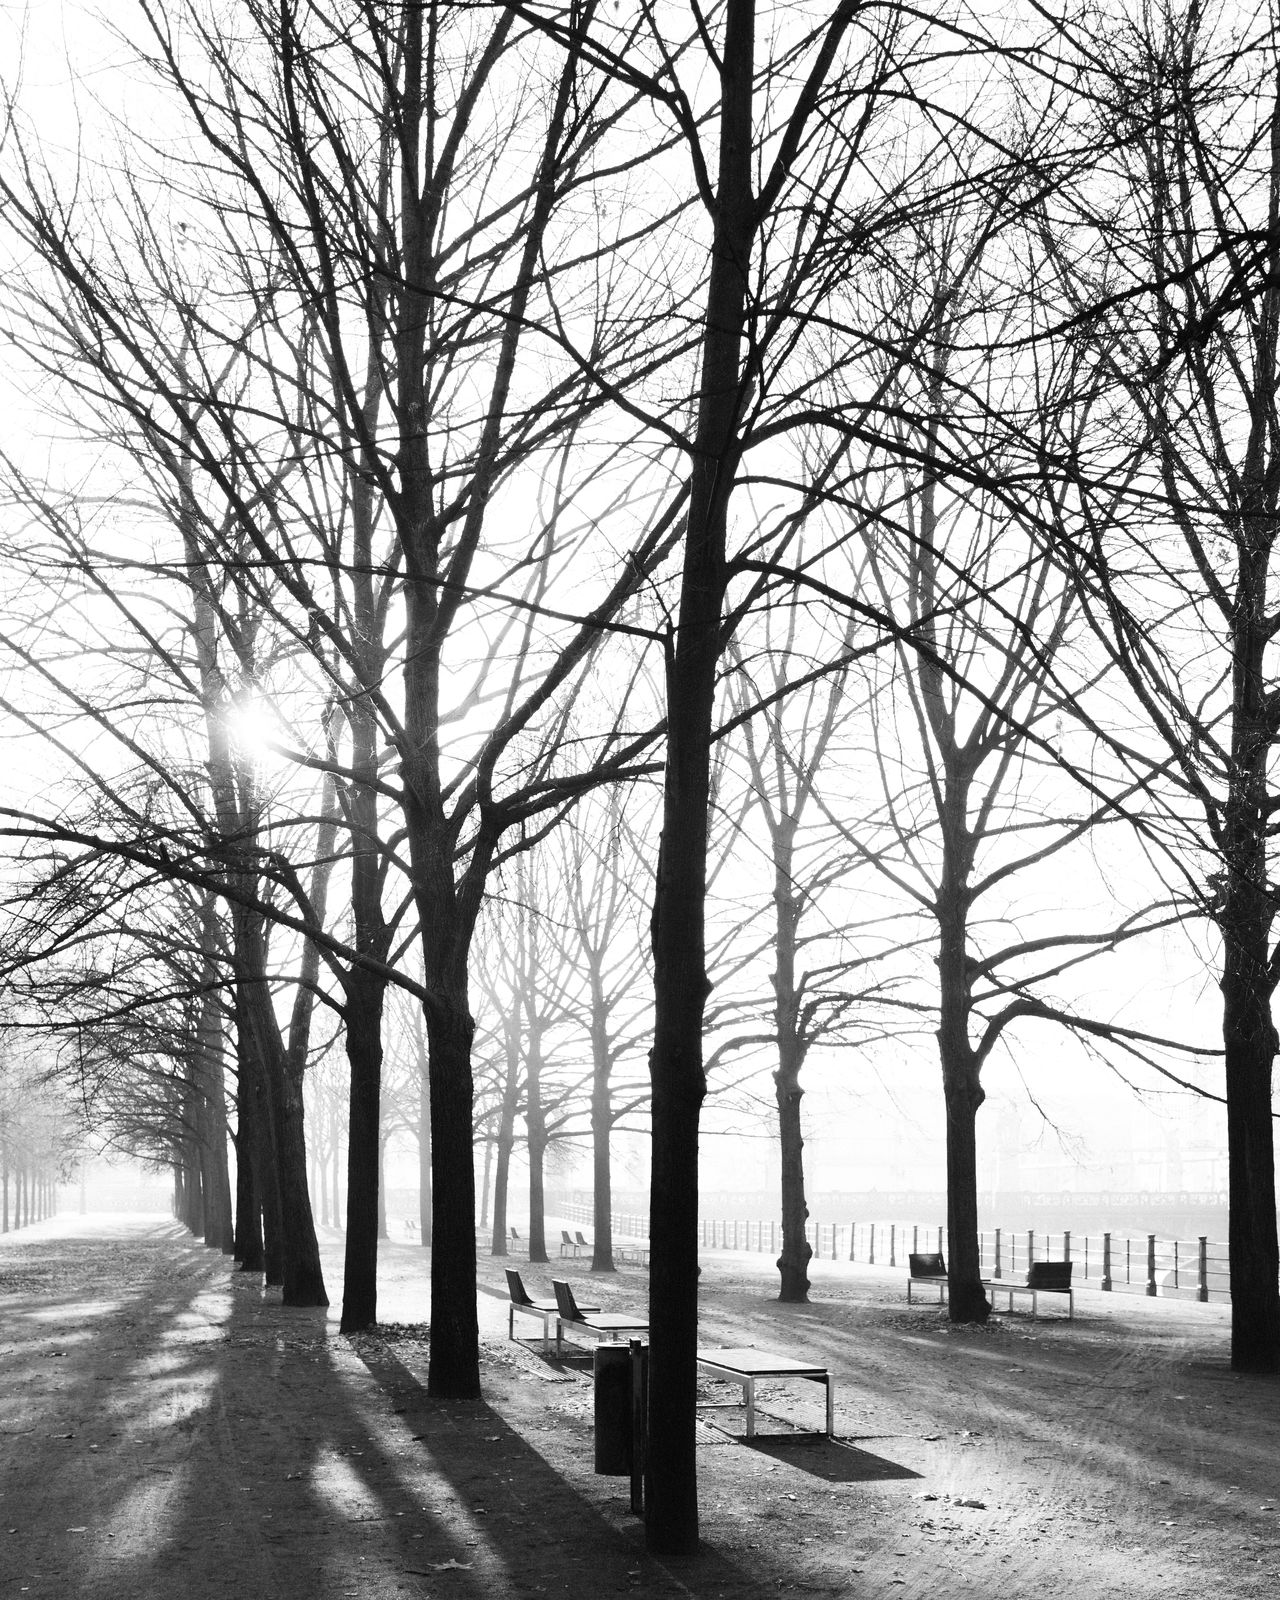 empty park Bare Tree Berlin Lustgarten November November 2016 November Morning S Spätherbst Travel Destinations Tree